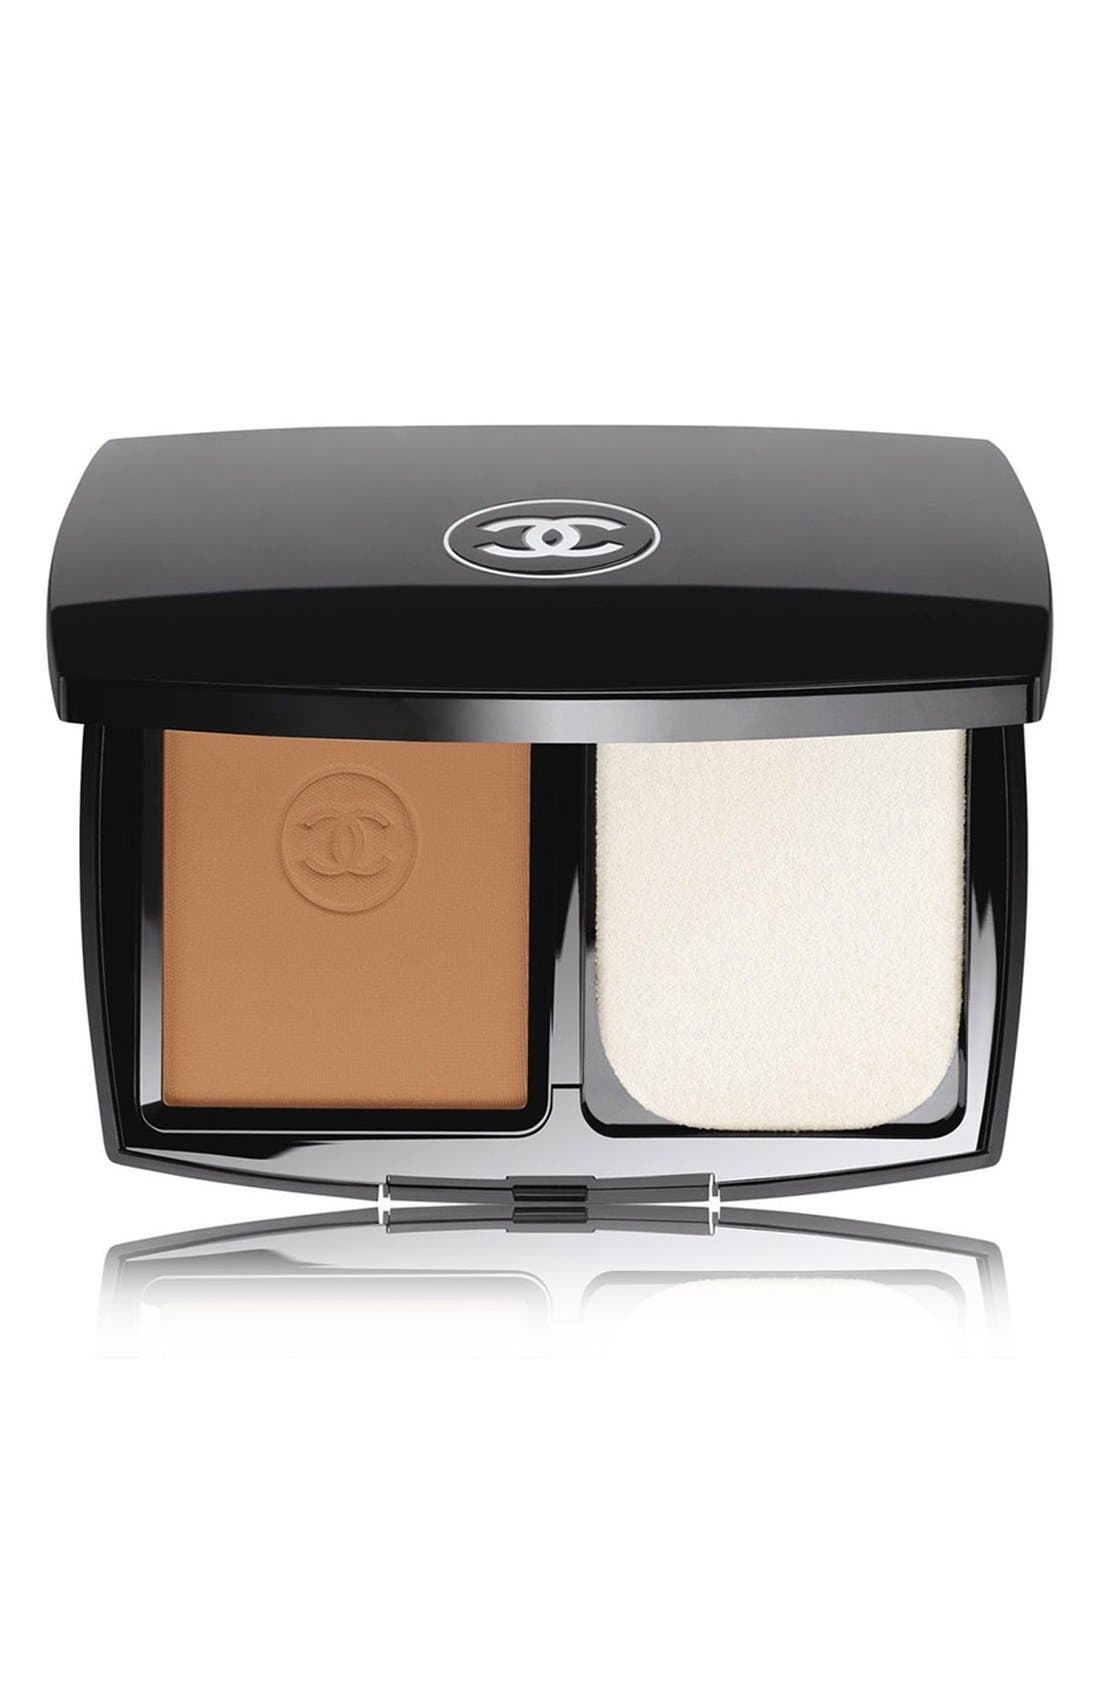 LE TEINT ULTRA TENUE<br />Ultrawear Flawless Compact Foundation Broad Spectrum SPF 15 Sunscreen,                             Main thumbnail 1, color,                             91 CARAMEL